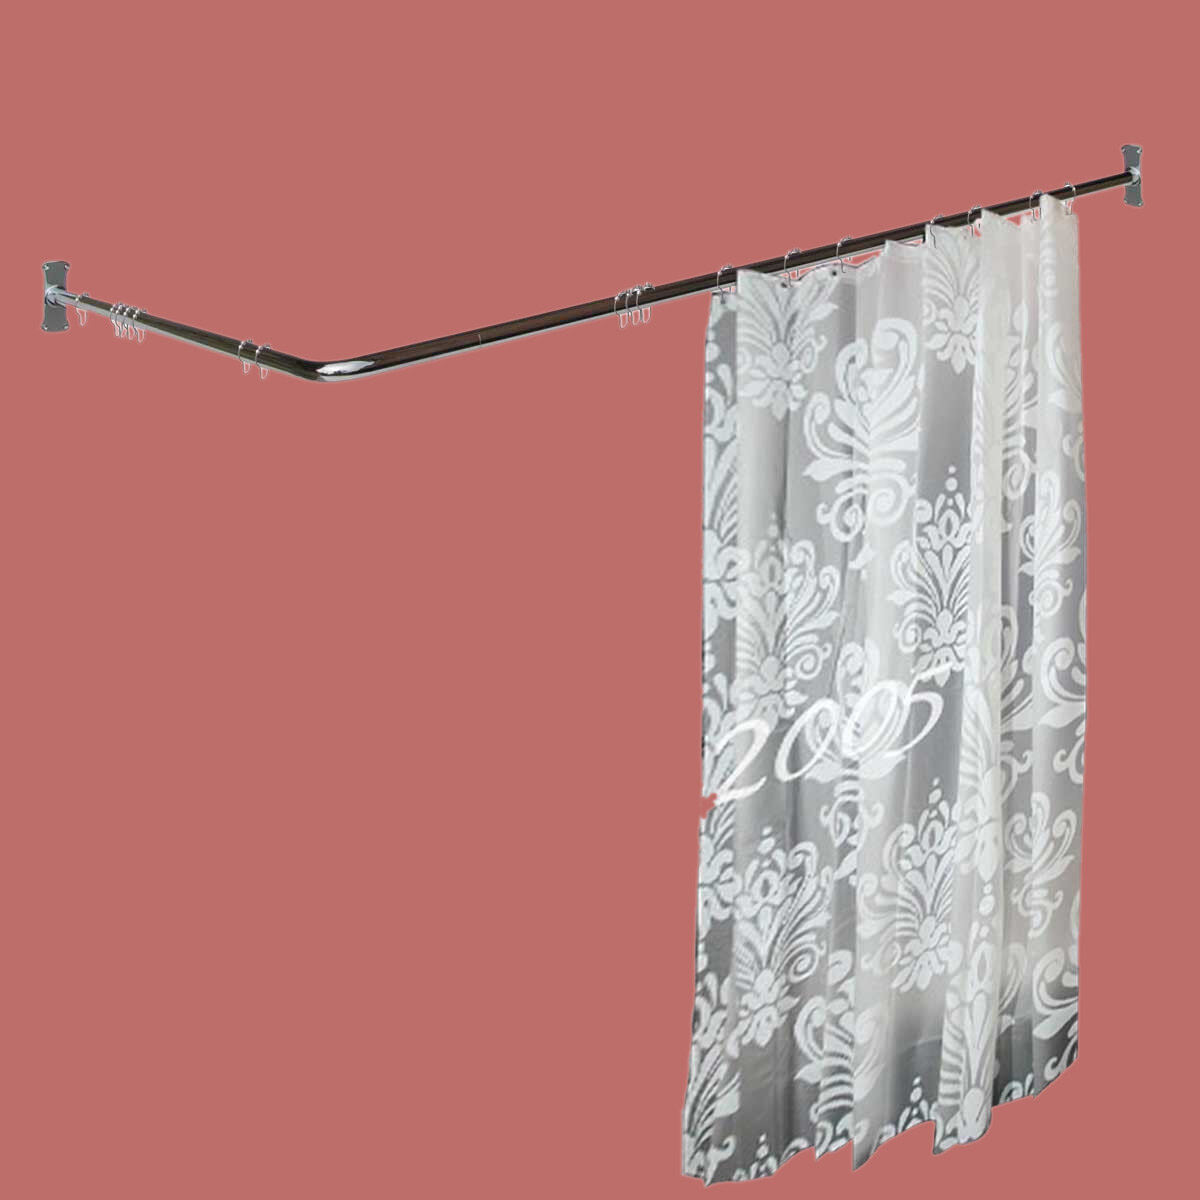 Two Sided 5 5 L Shaped Fixed Shower Curtain Rod